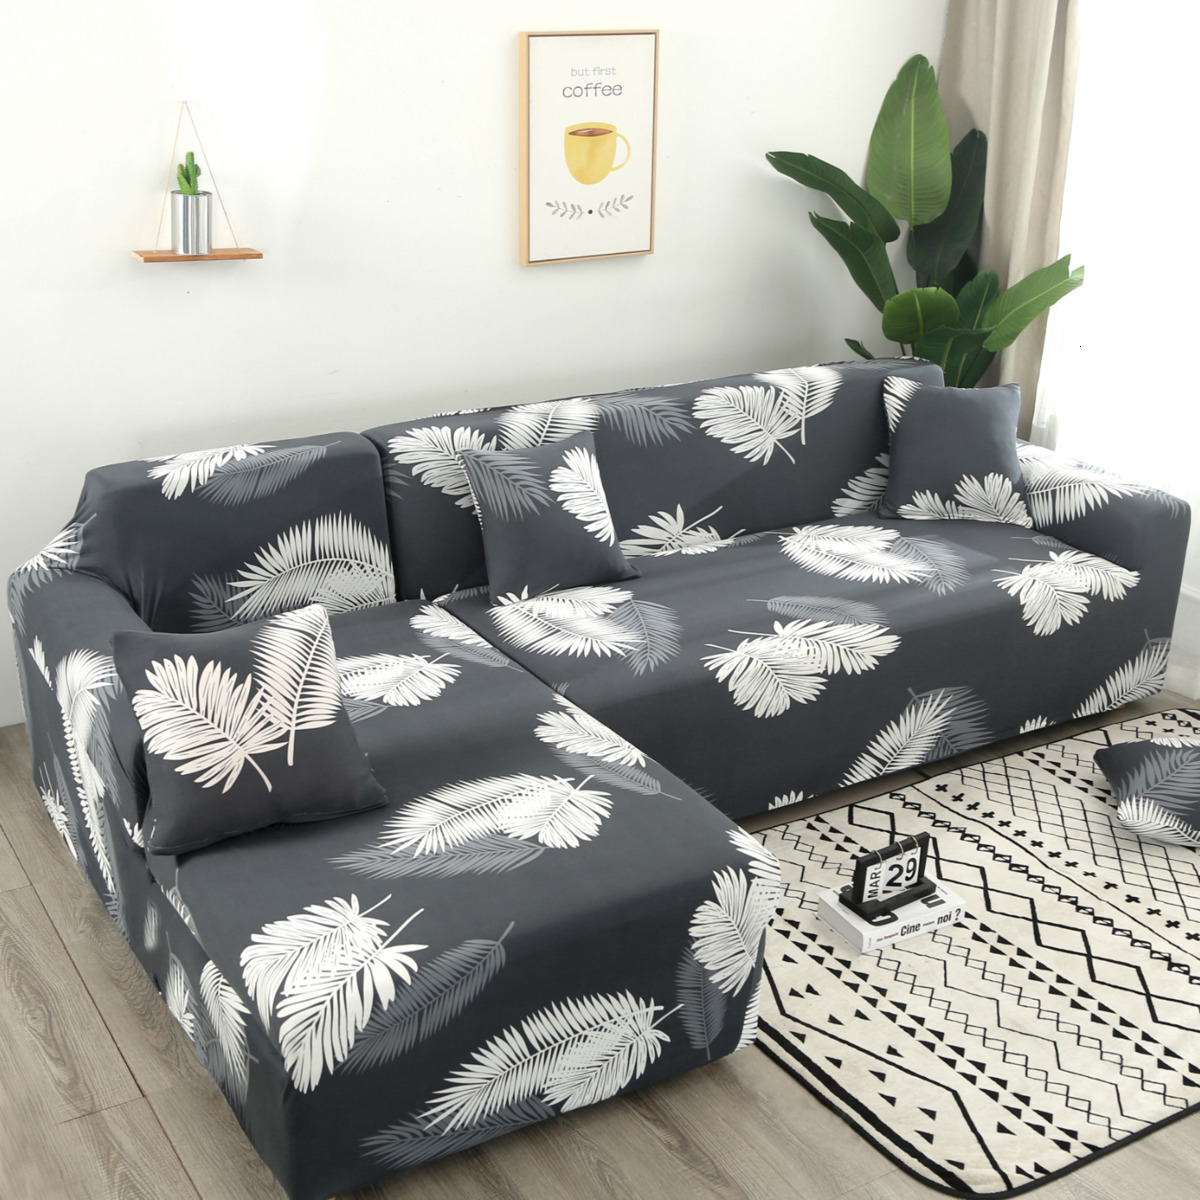 Us 4 9 50 Off Leaves Print Sectional Sofa Cover Set Elastic Stretch L Shaped Slipcover For Chaise Longue Living Room Furniture Protector 2pcs On